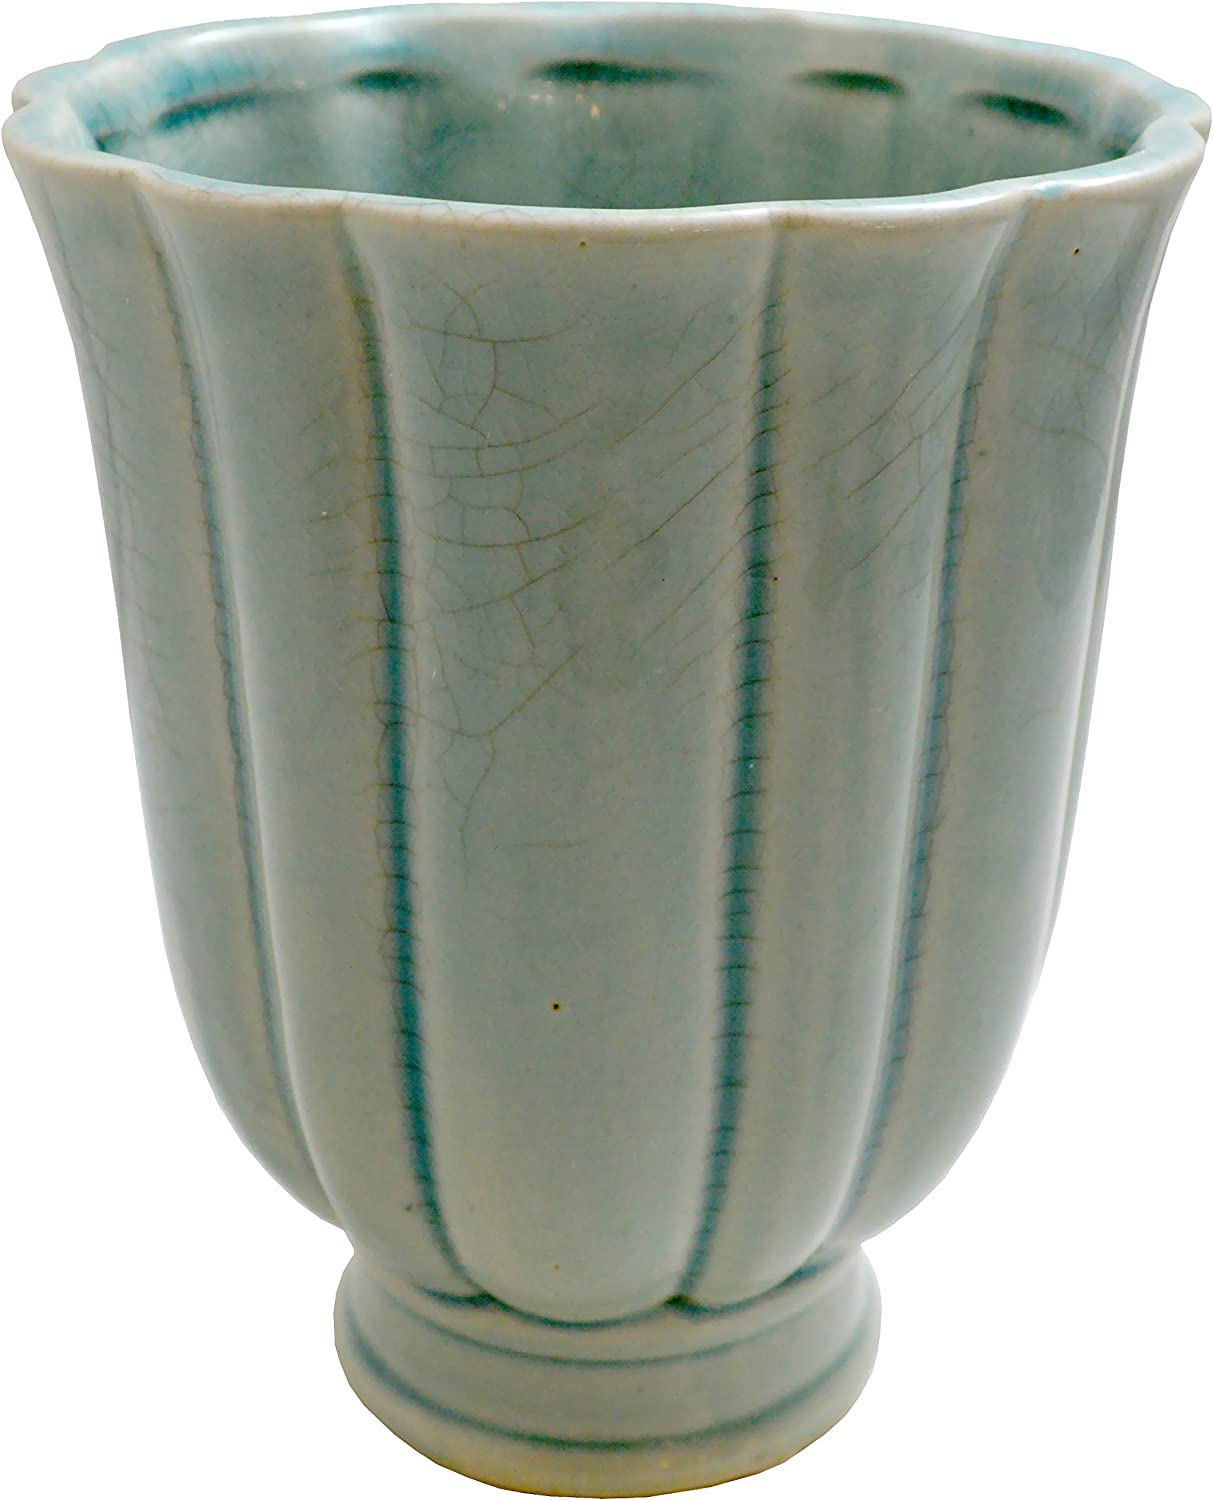 Sia Home Fashions Decor Collection Ceramic Round Scalloped Vase, Teal